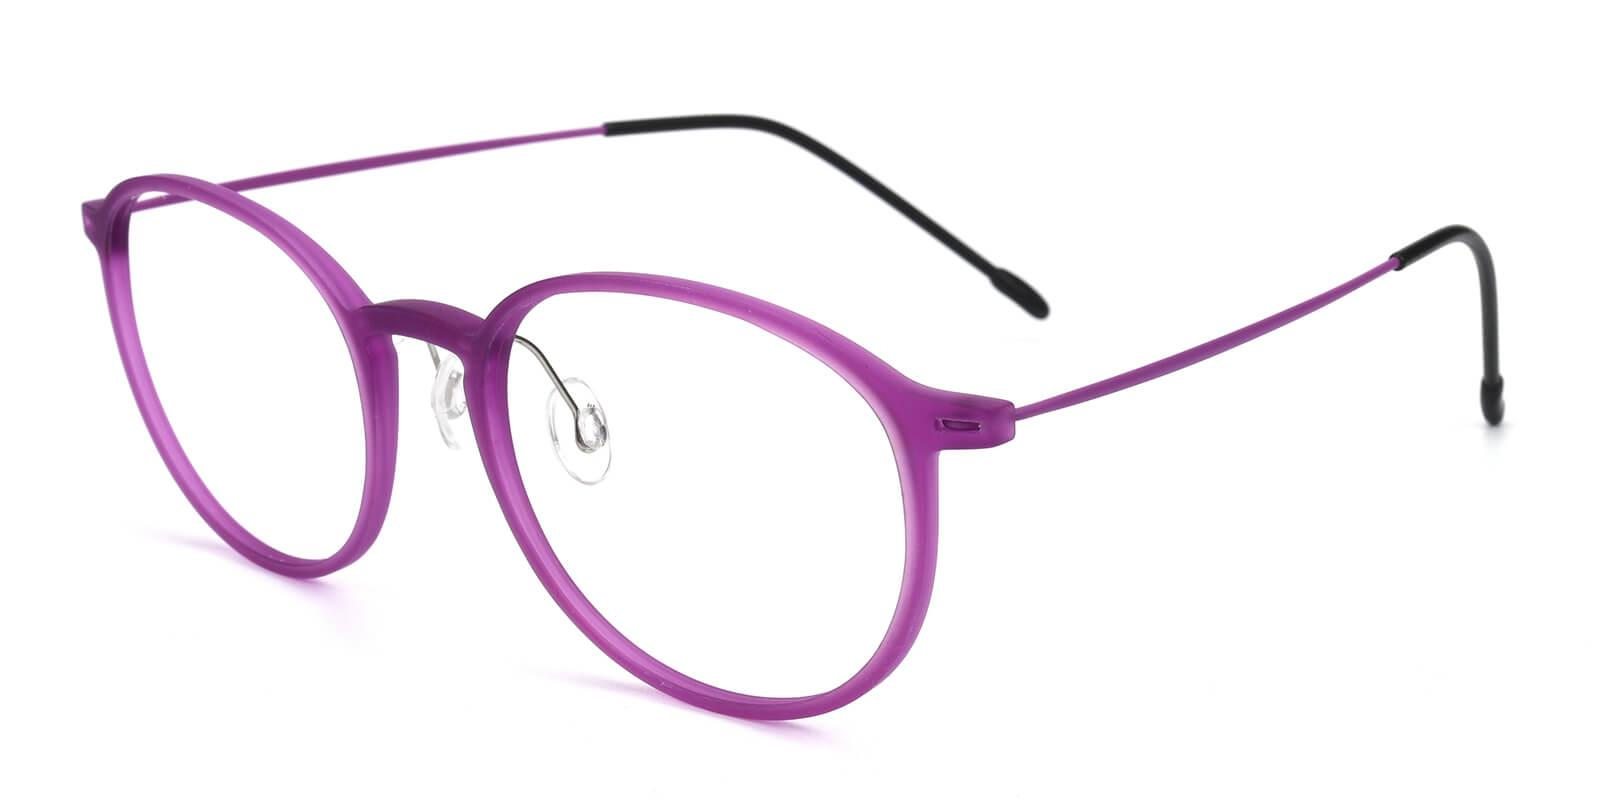 Yunda-Purple-Round-Combination-Eyeglasses-additional1